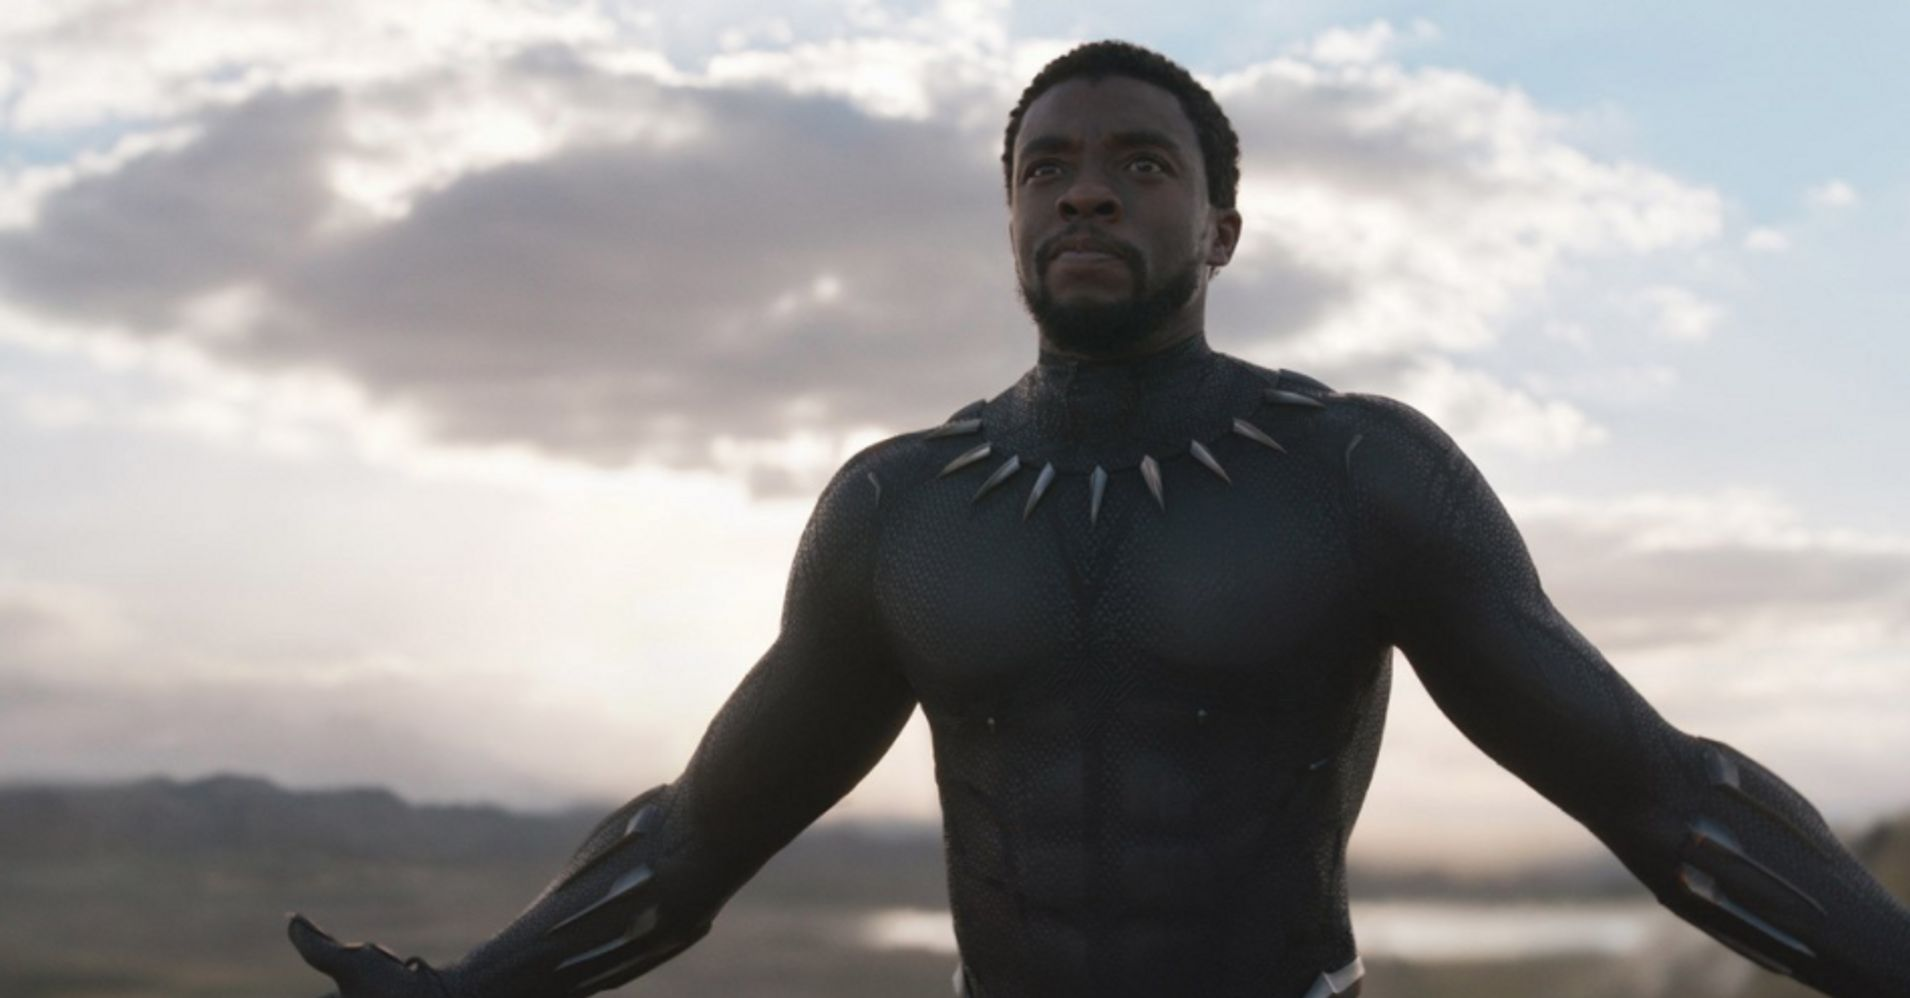 'Black Panther' Sequel Officially Confirmed By Marvel Studio Head